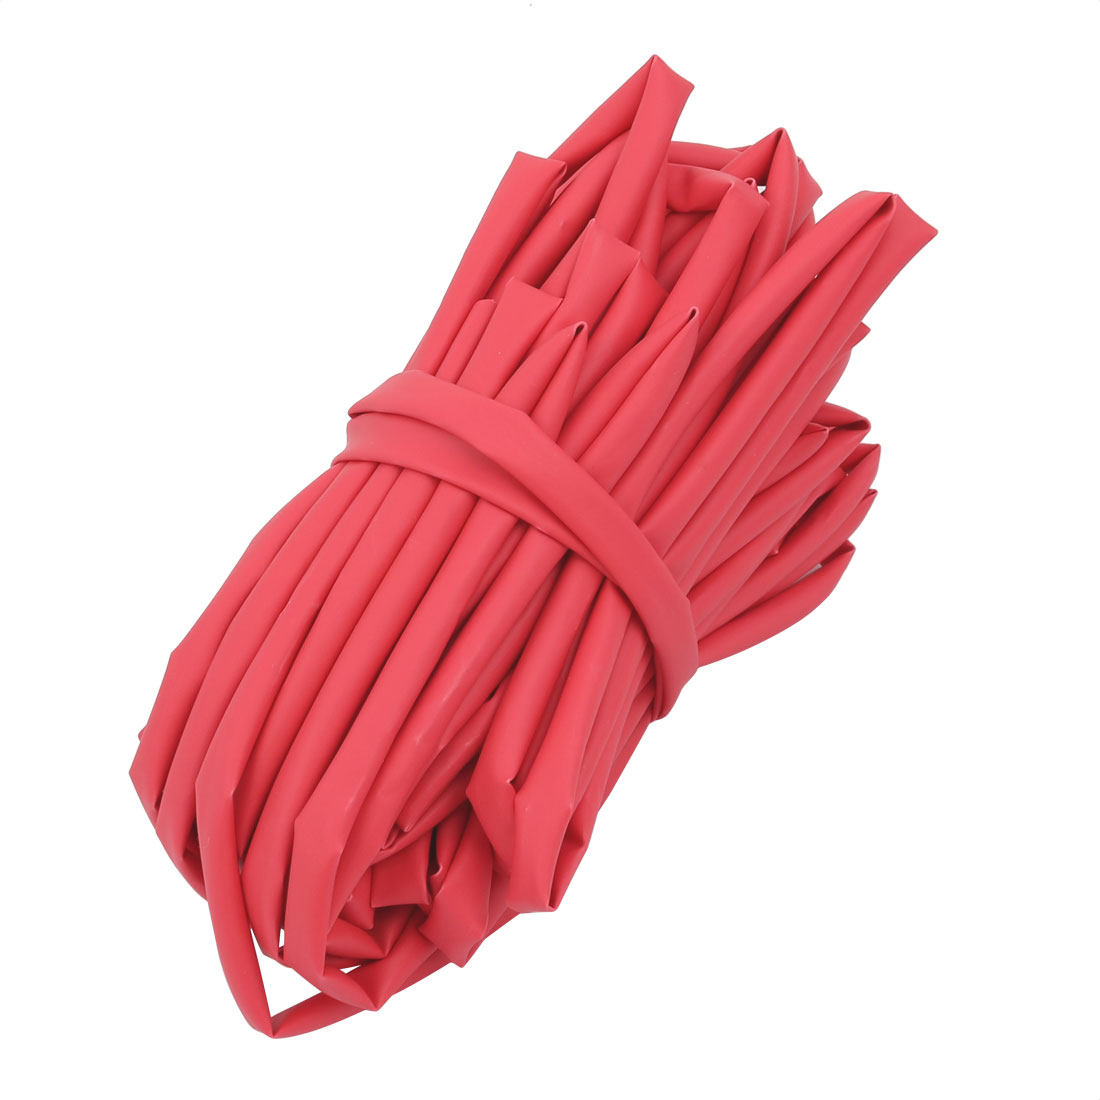 10M 4.5mm Inner Dia Polyolefin Flame Retardant Tube Red for Wire Repairing